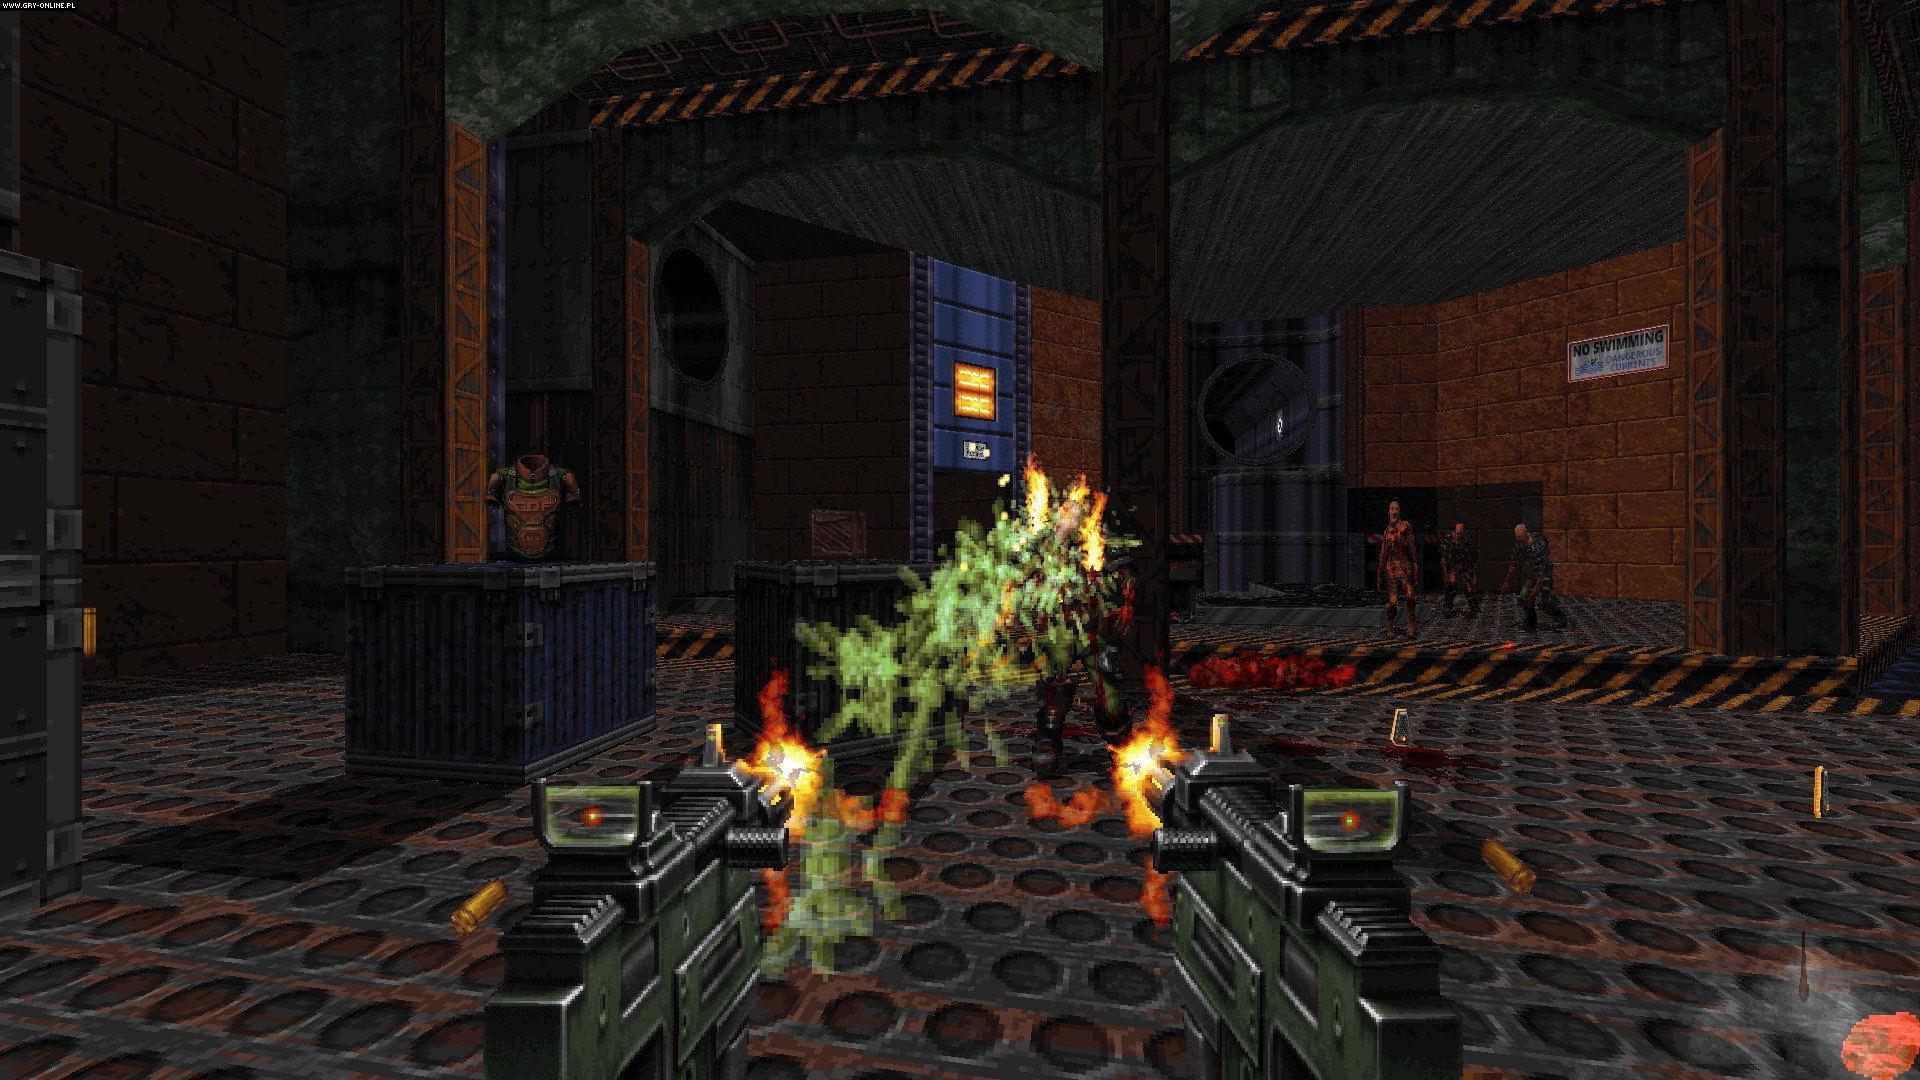 Ion Fury PC Games Image 5/33, Voidpoint, 3D Realms